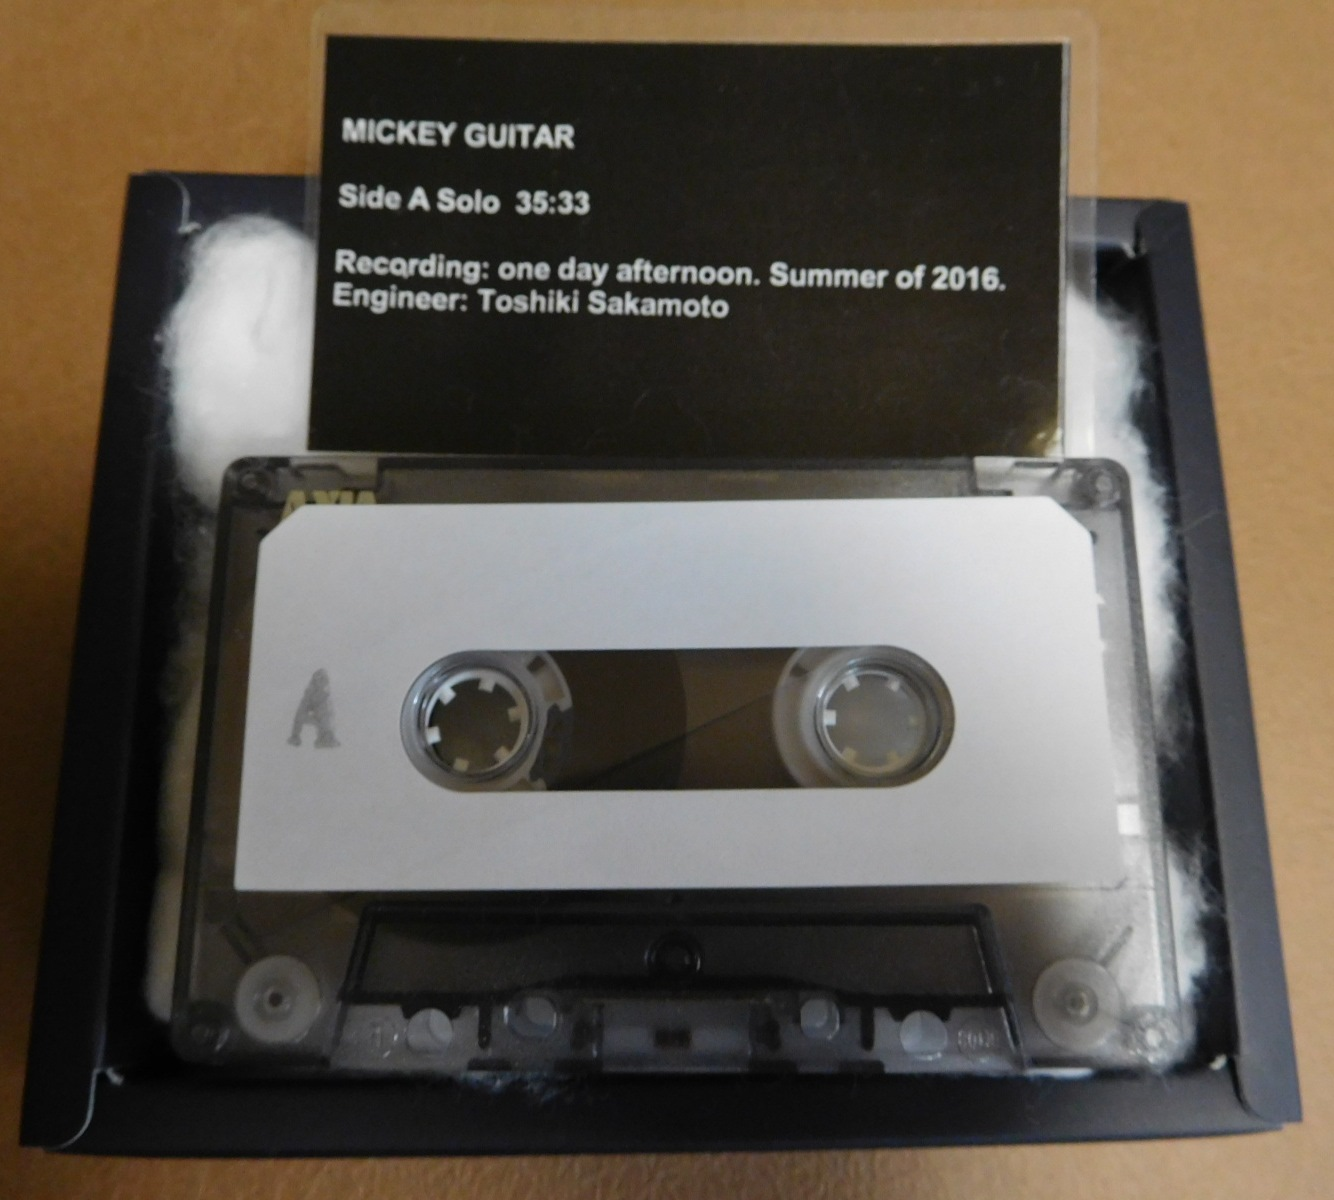 MICKEY GUITAR (CASSETTE TAPE)